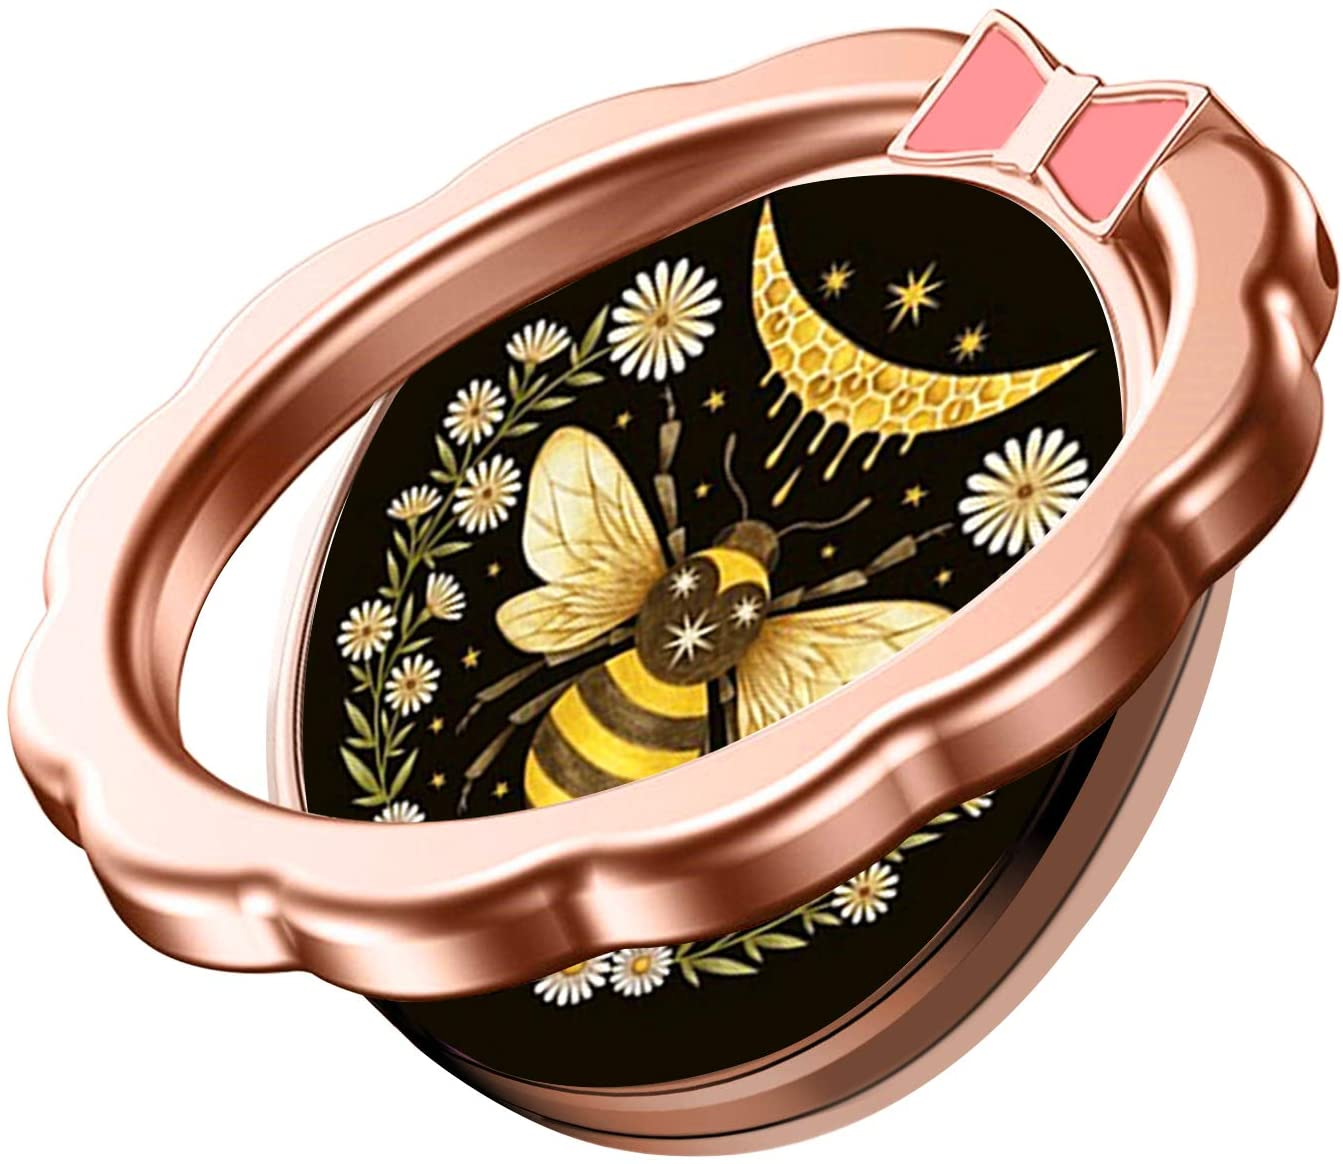 Phone Ring Holder Stand, Bee Pattern Flower Finger Kickstand 360 Degree Rotation Metal Cell Phone Ring Grip for All Smart Phone - Rose Gold.